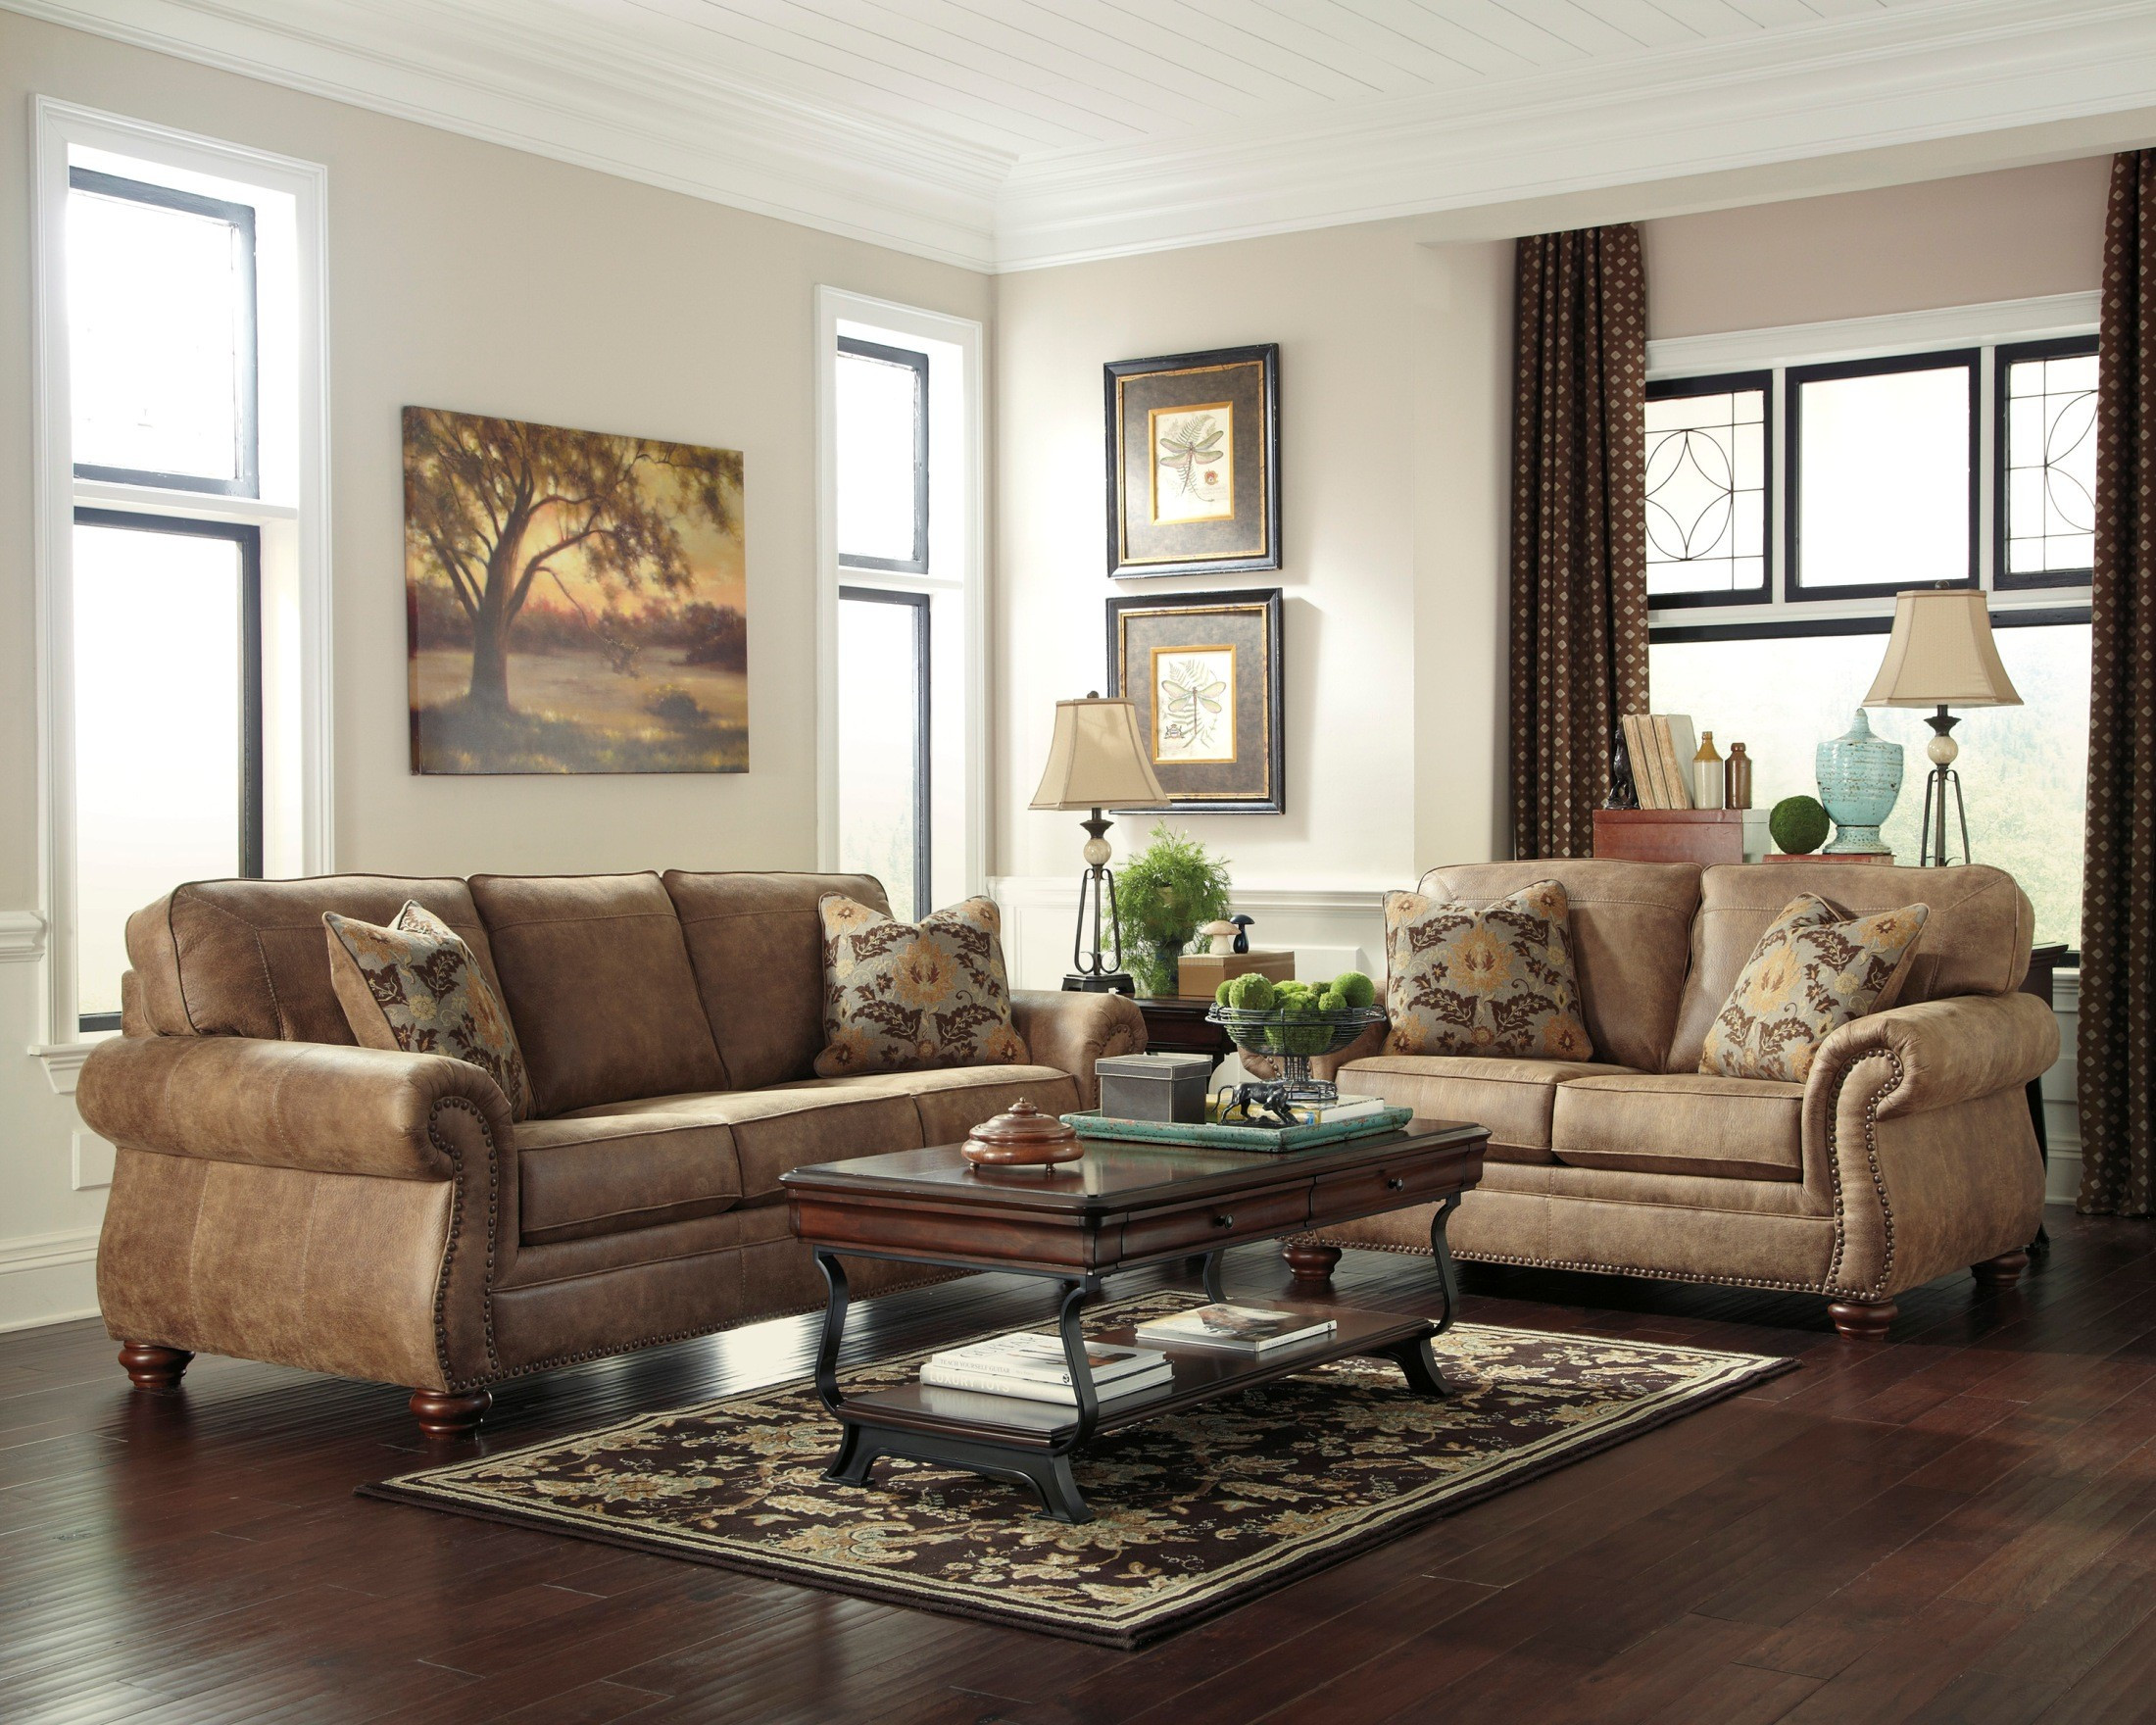 Best ideas about Family Room Couches . Save or Pin Larkinhurst Earth Living Room Set from Ashley 38 35 Now.